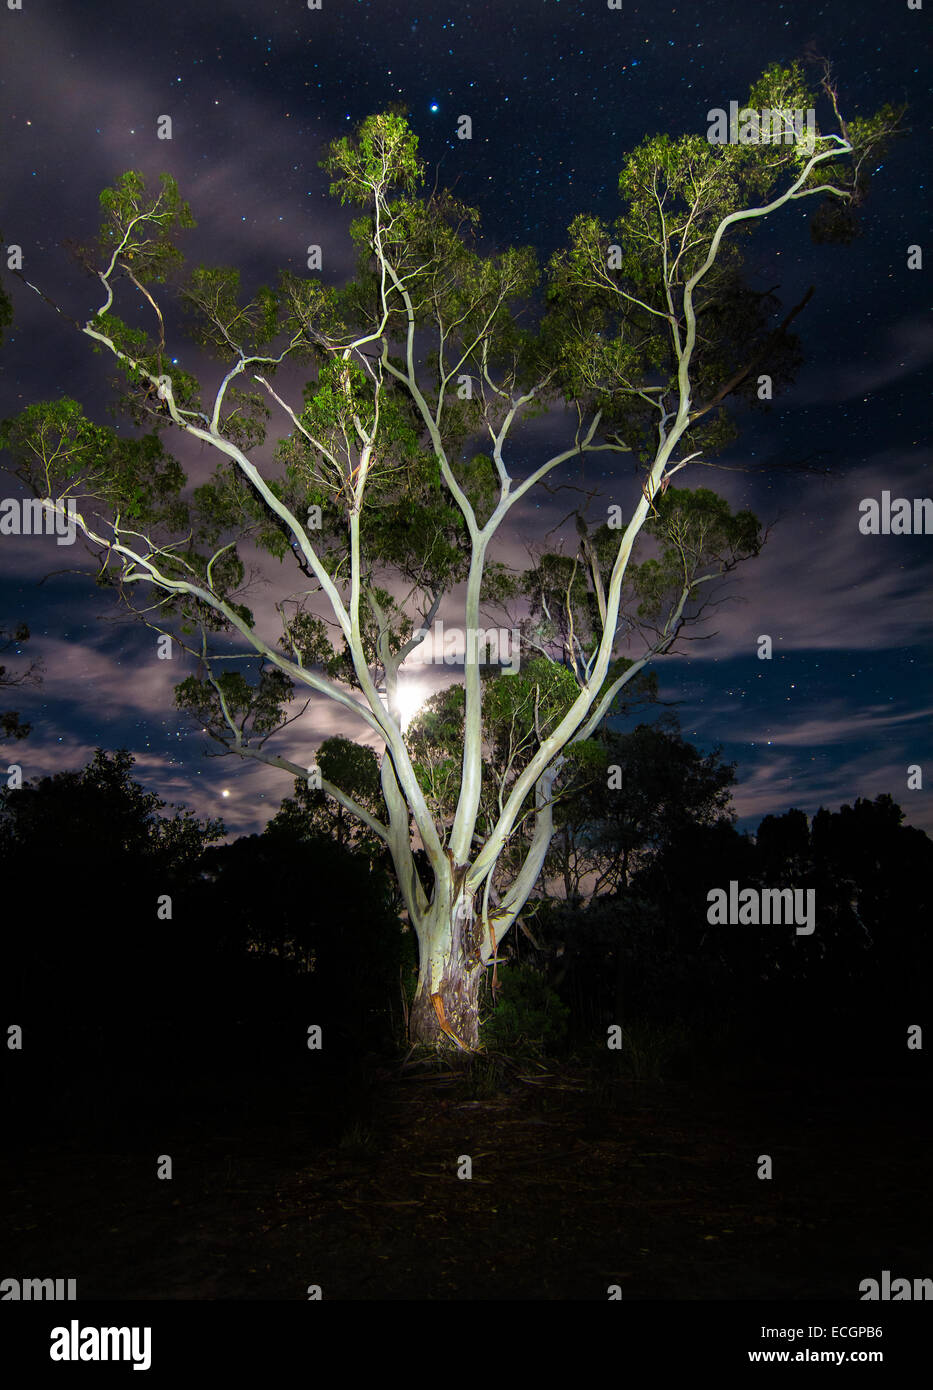 Lightning Tree - Eucalypt Illuminated at Night, with Moonlight - Stock Image